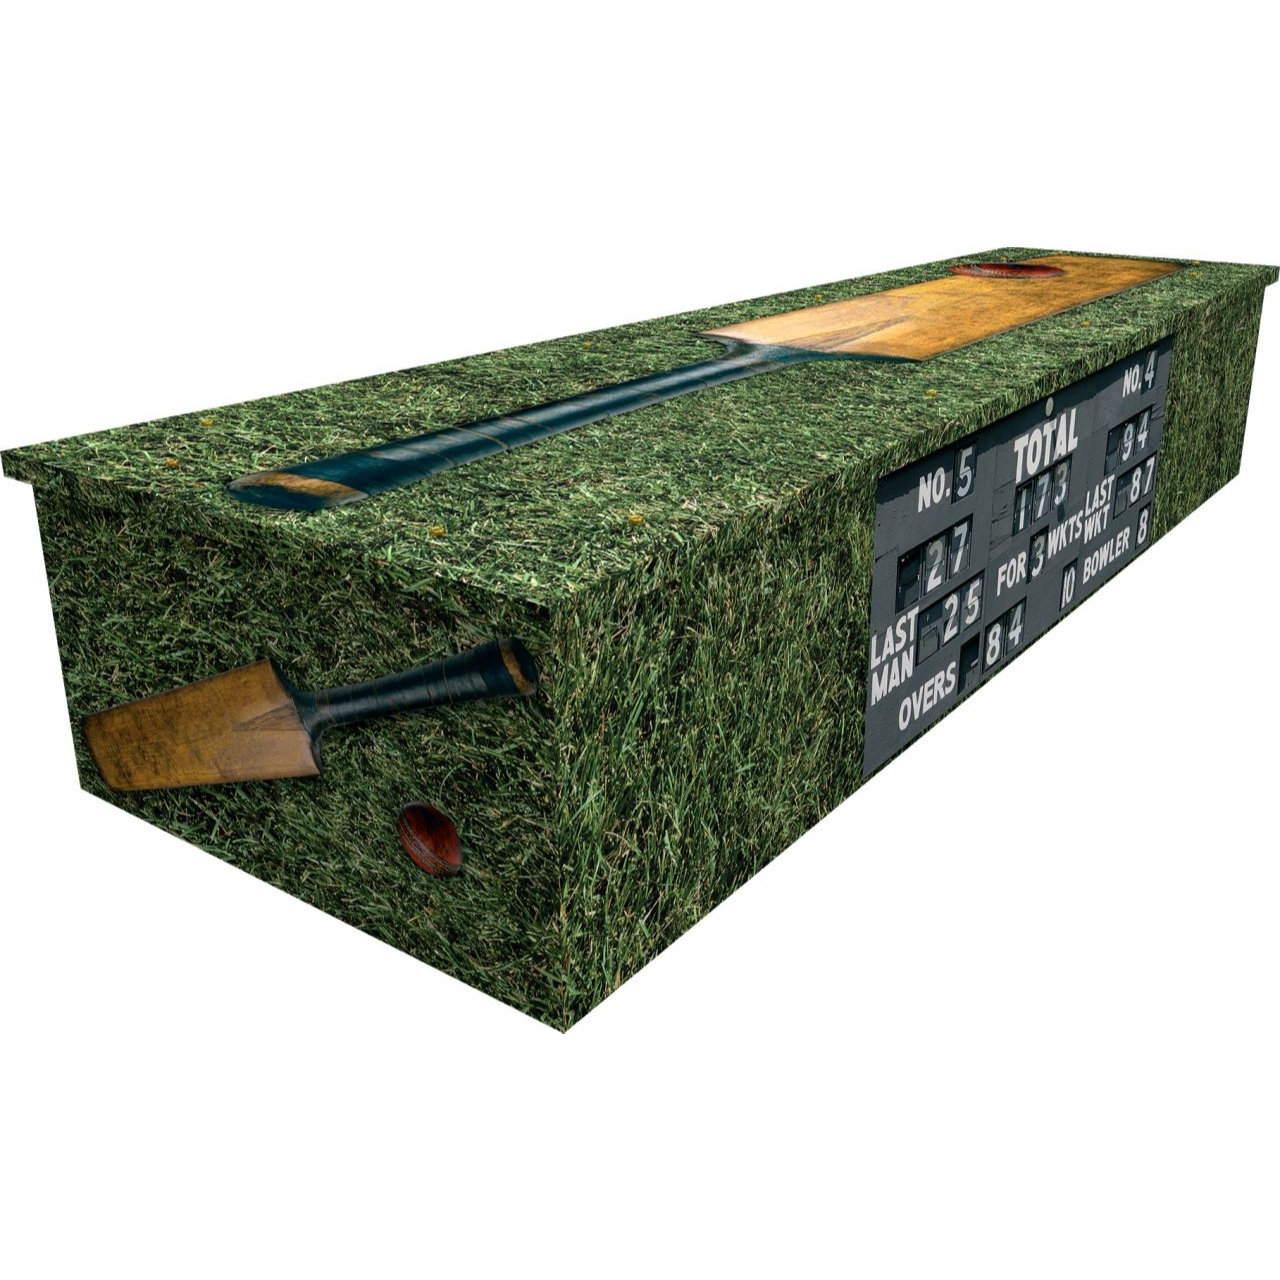 Cricket Cardboard Coffin